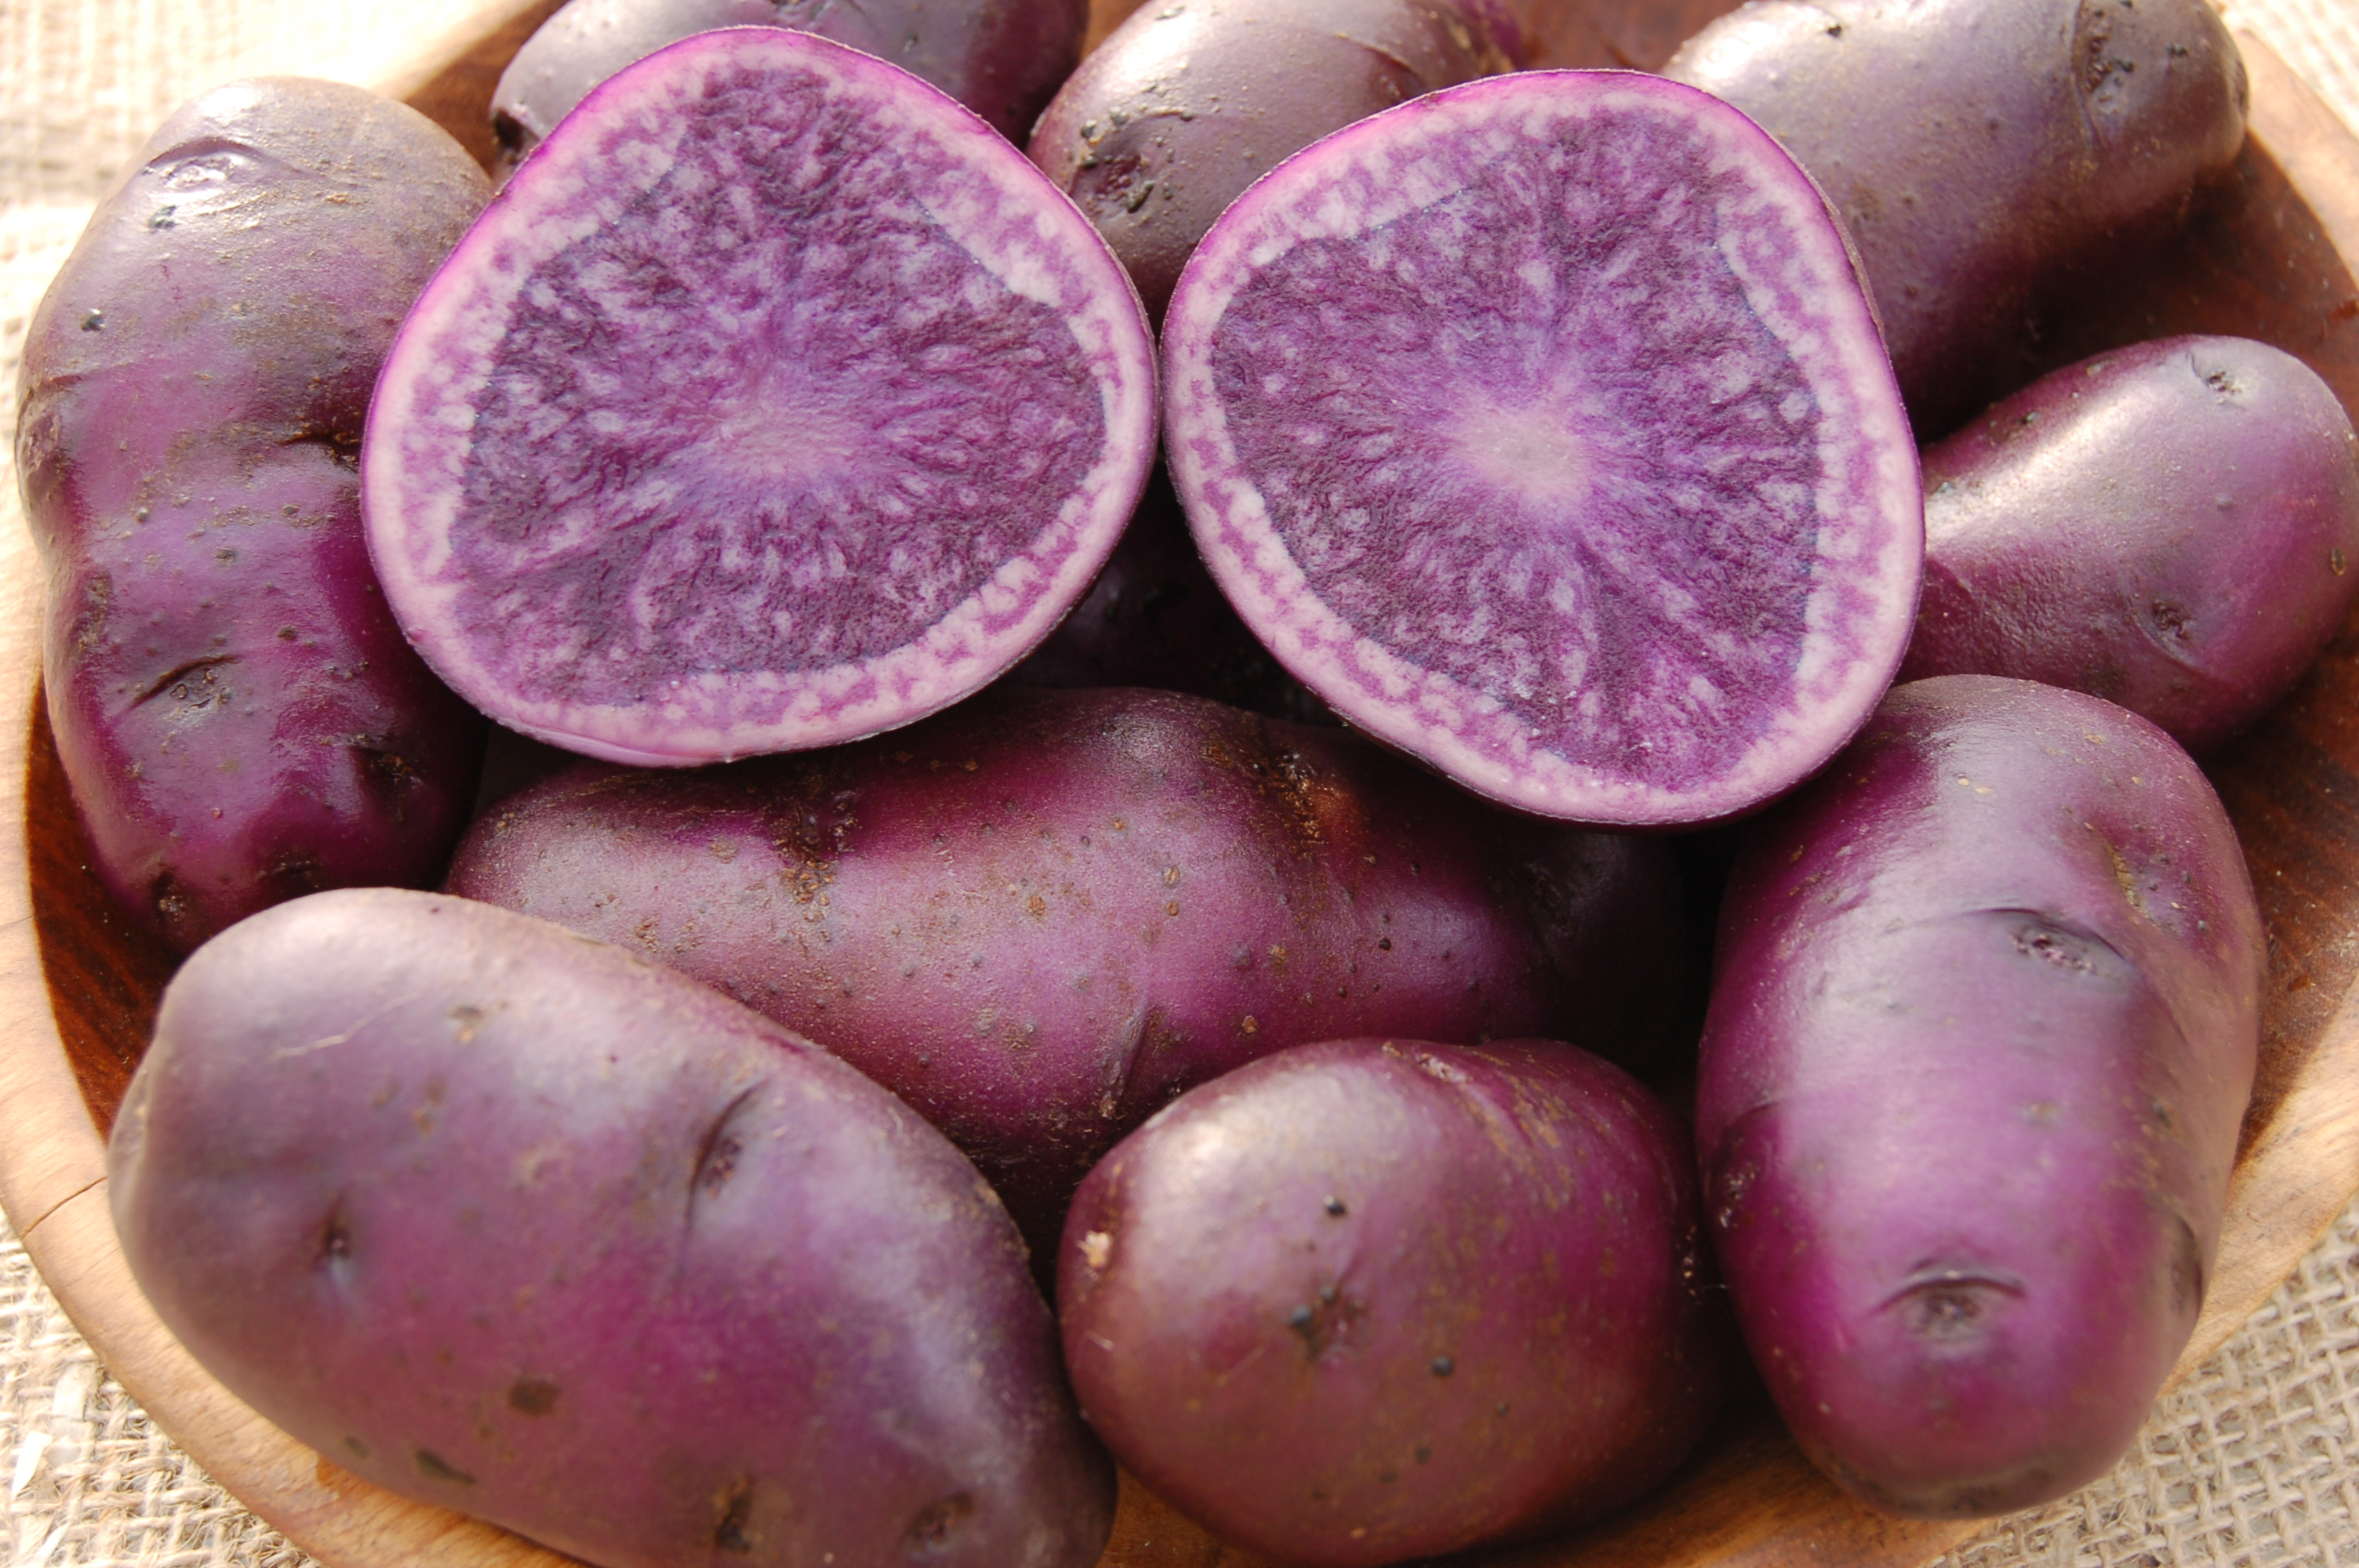 Plentiful Potatoes: Selecting the Right Varieties for Your